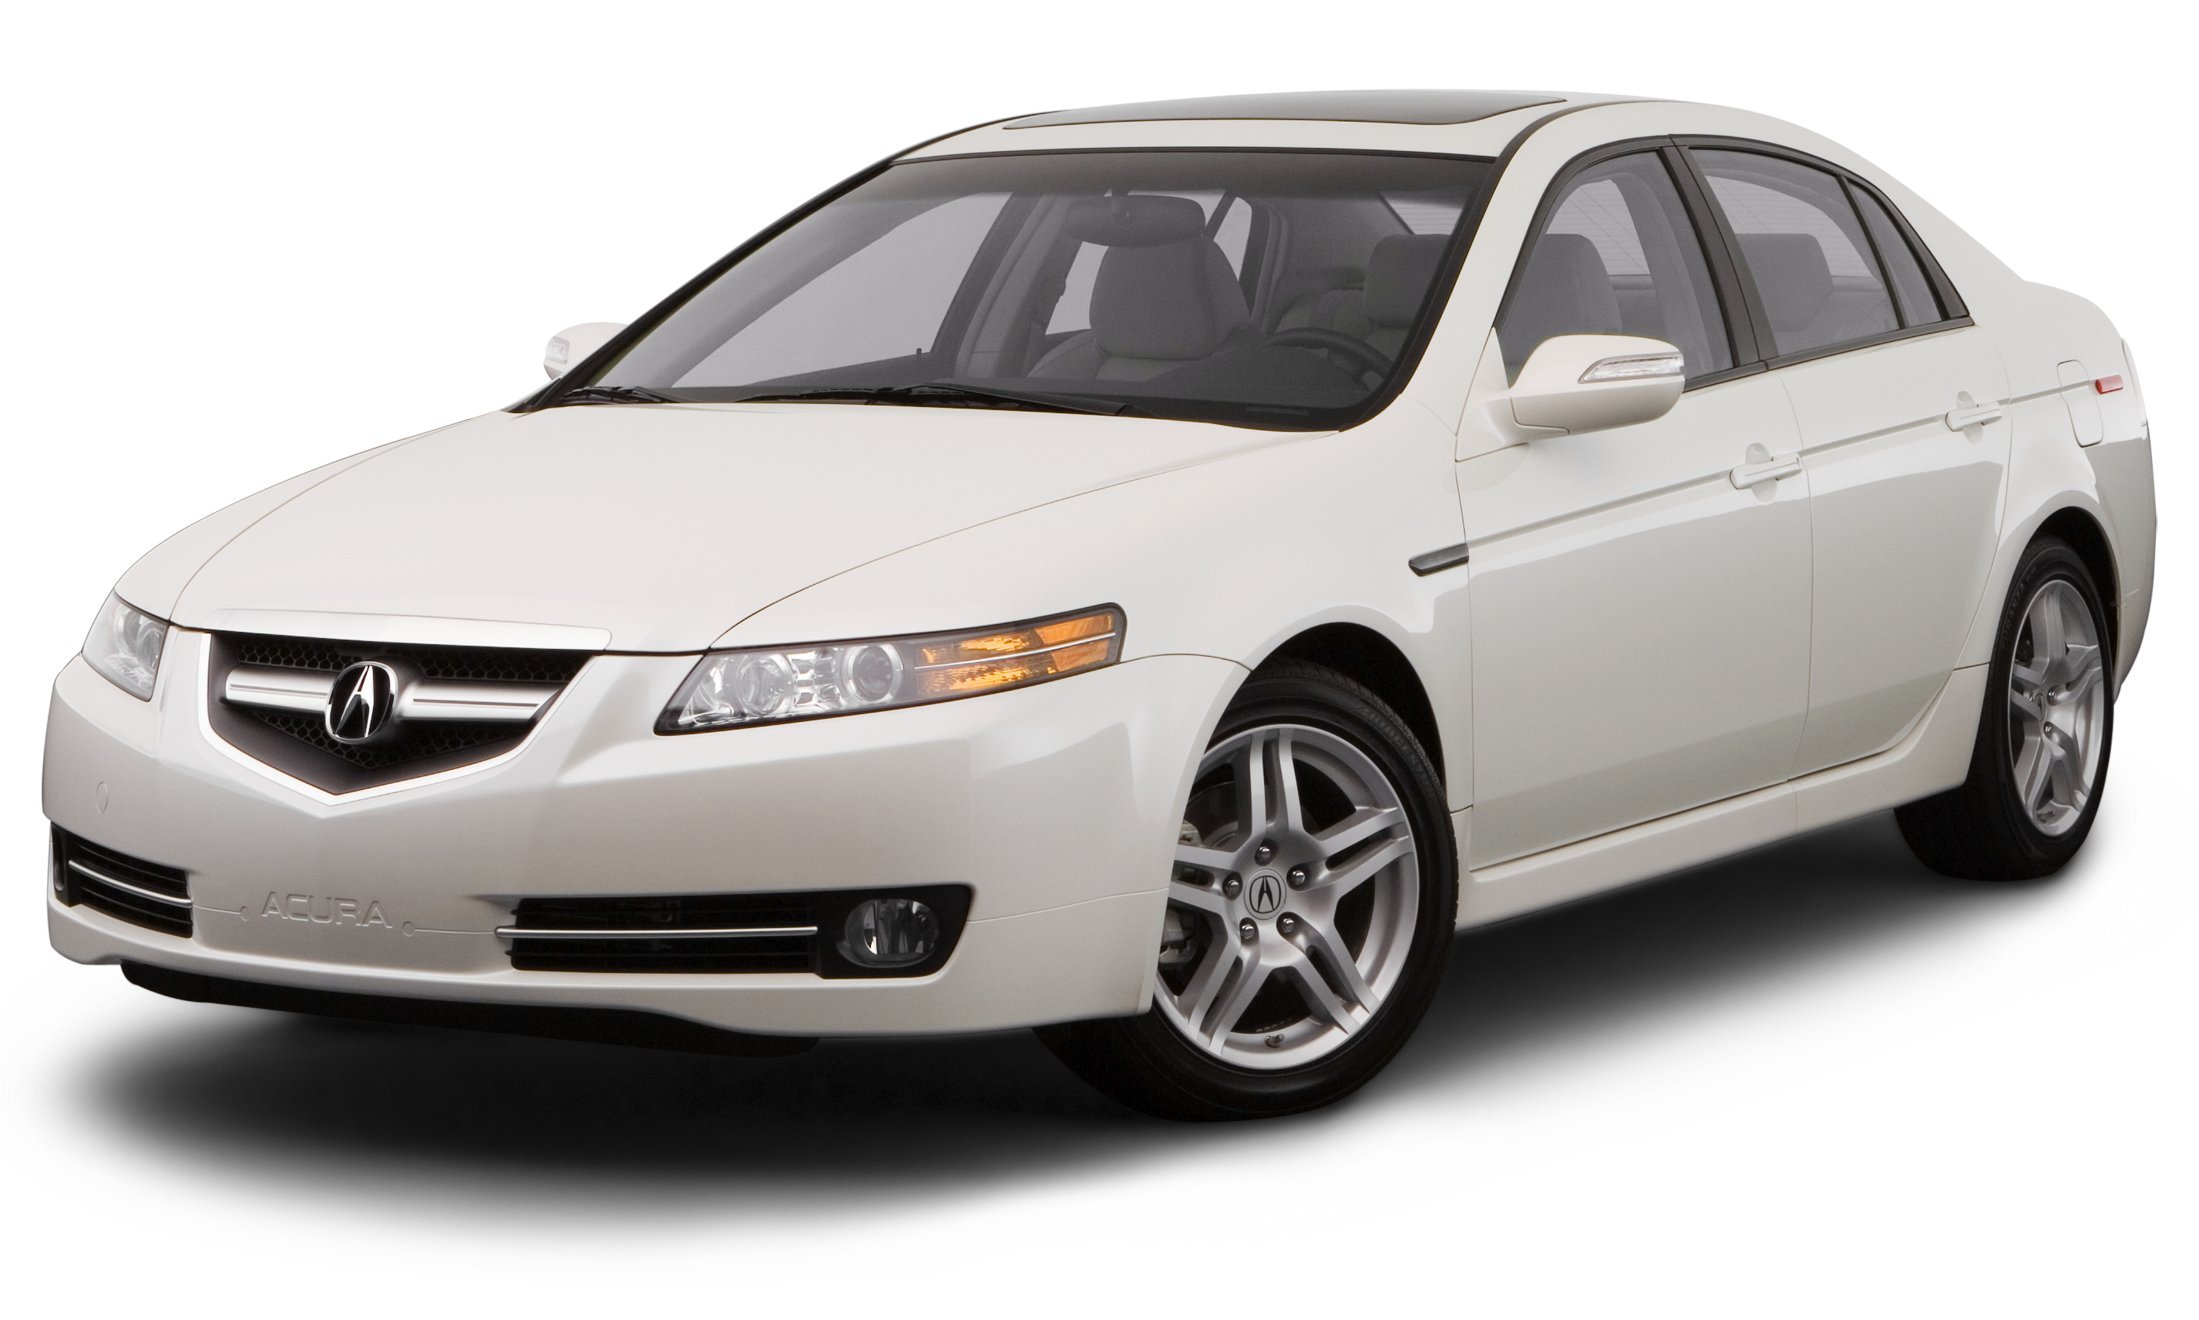 2008 acura tl reviews images and specs vehicles. Black Bedroom Furniture Sets. Home Design Ideas